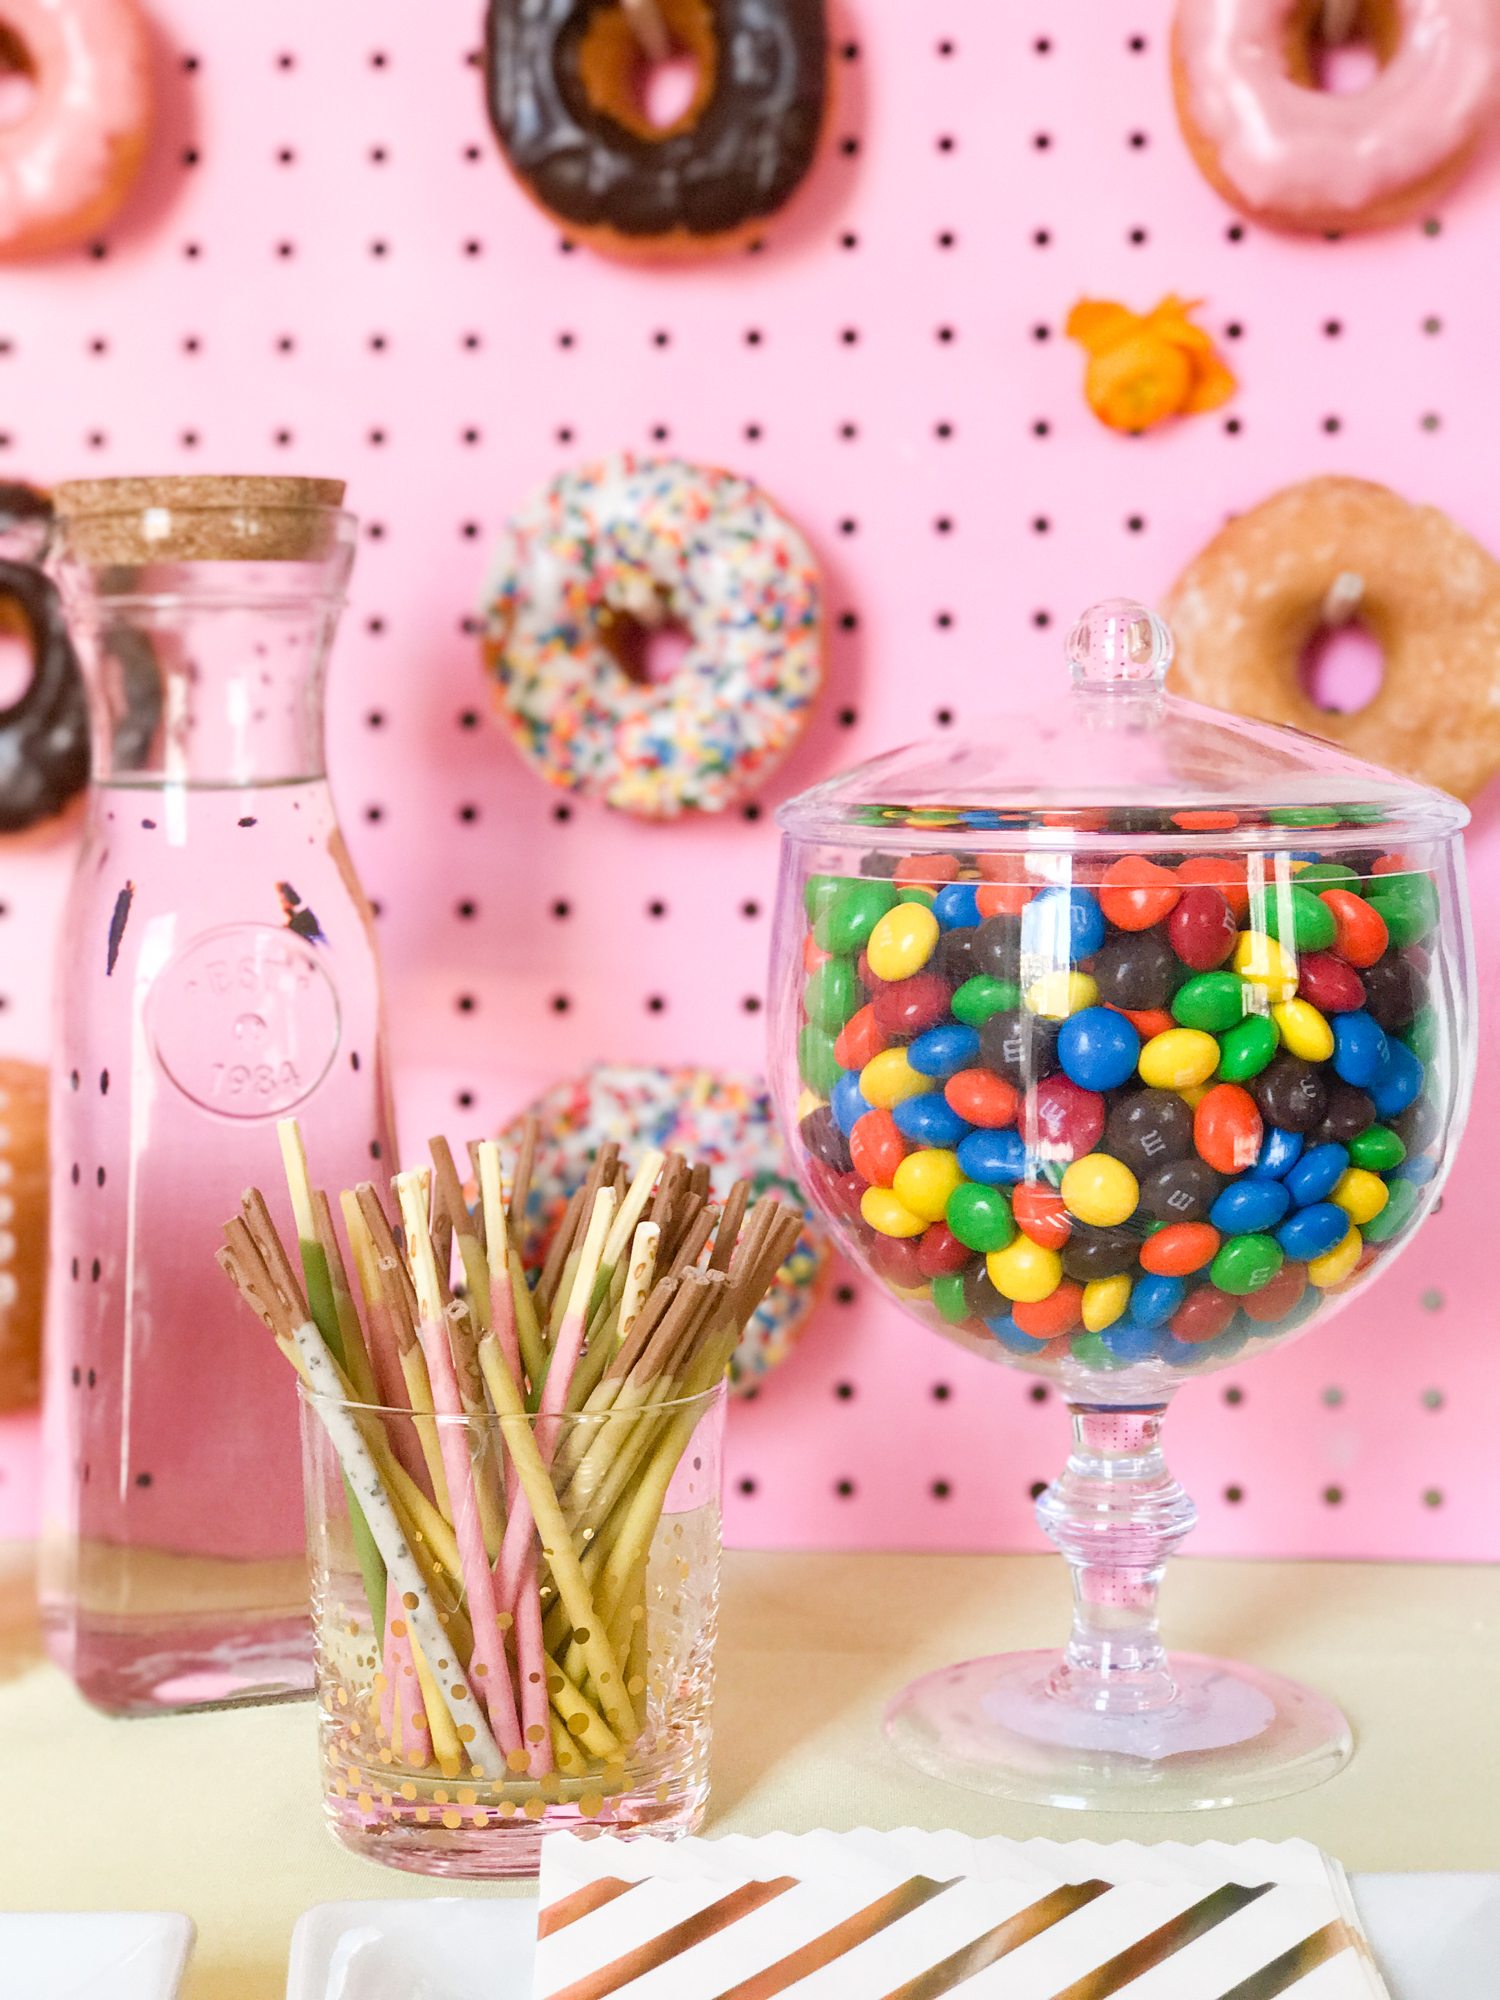 A DIY dessert bar to sweeten up your next party.